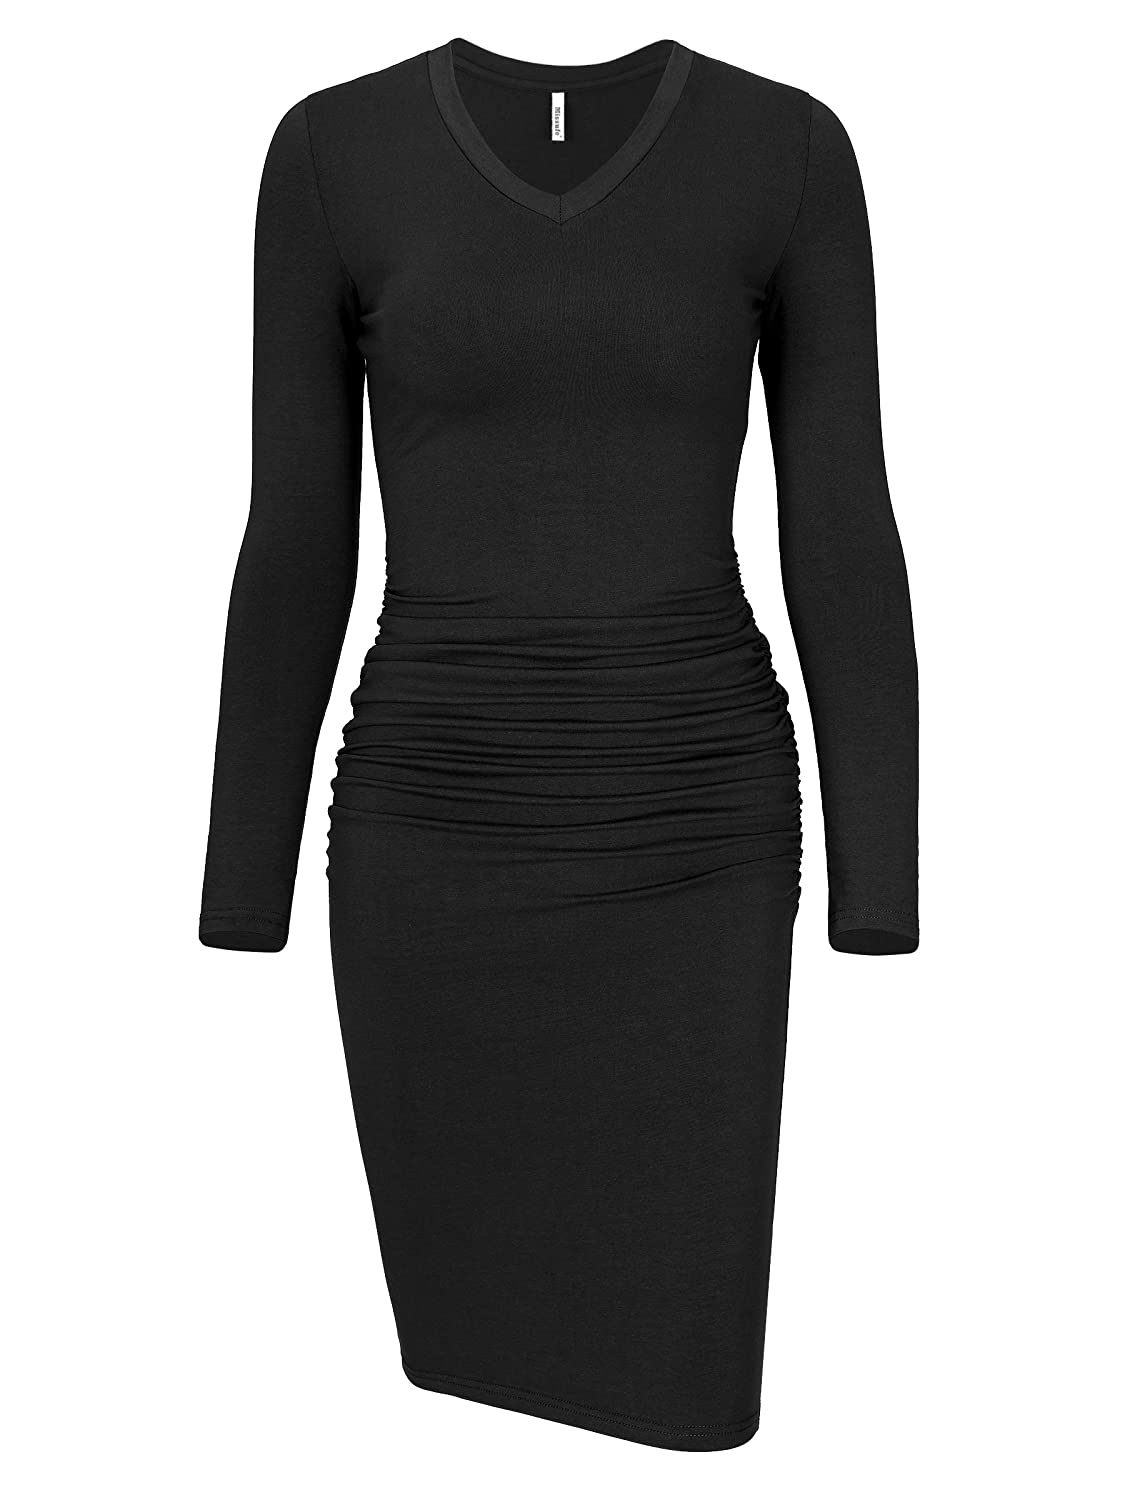 Missufe Womens Long Sleeve V Neck Midi Casual Fitted Basic Ruched Bodycon Dress